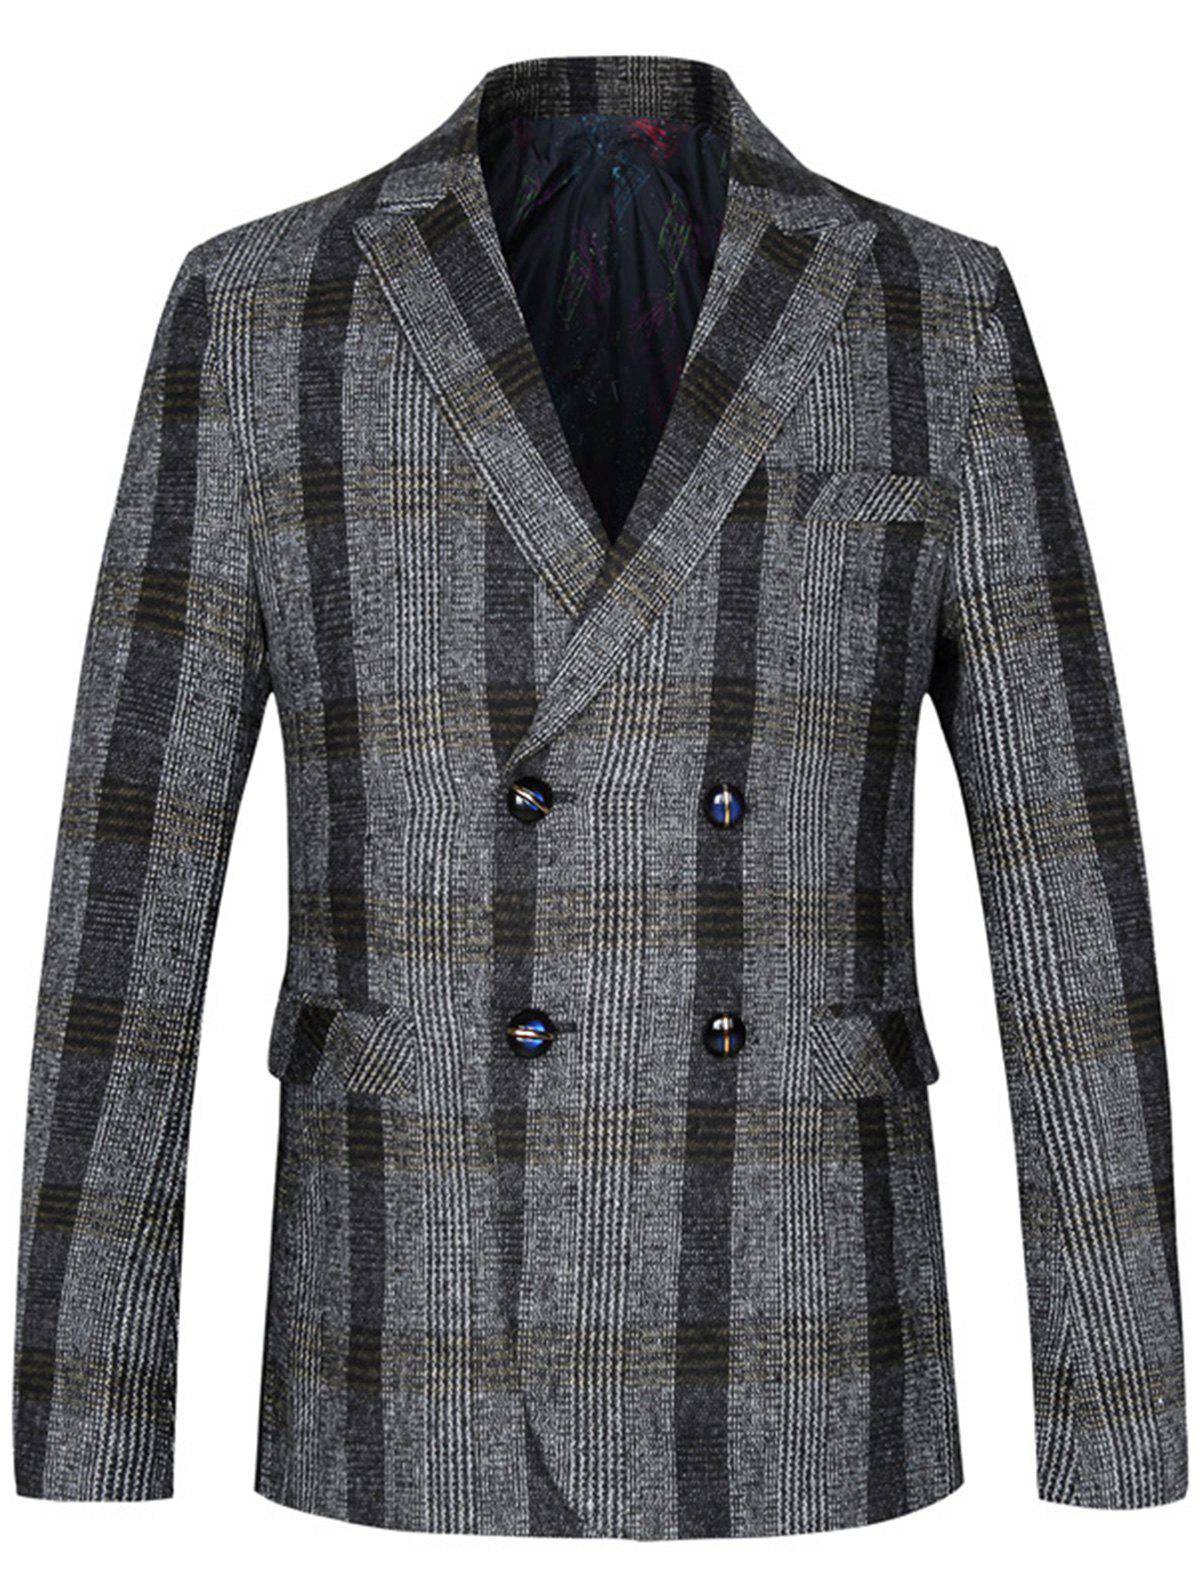 Lapel Double Breasted Woolen Tartan Blazer - LIGHT GRAY 4XL